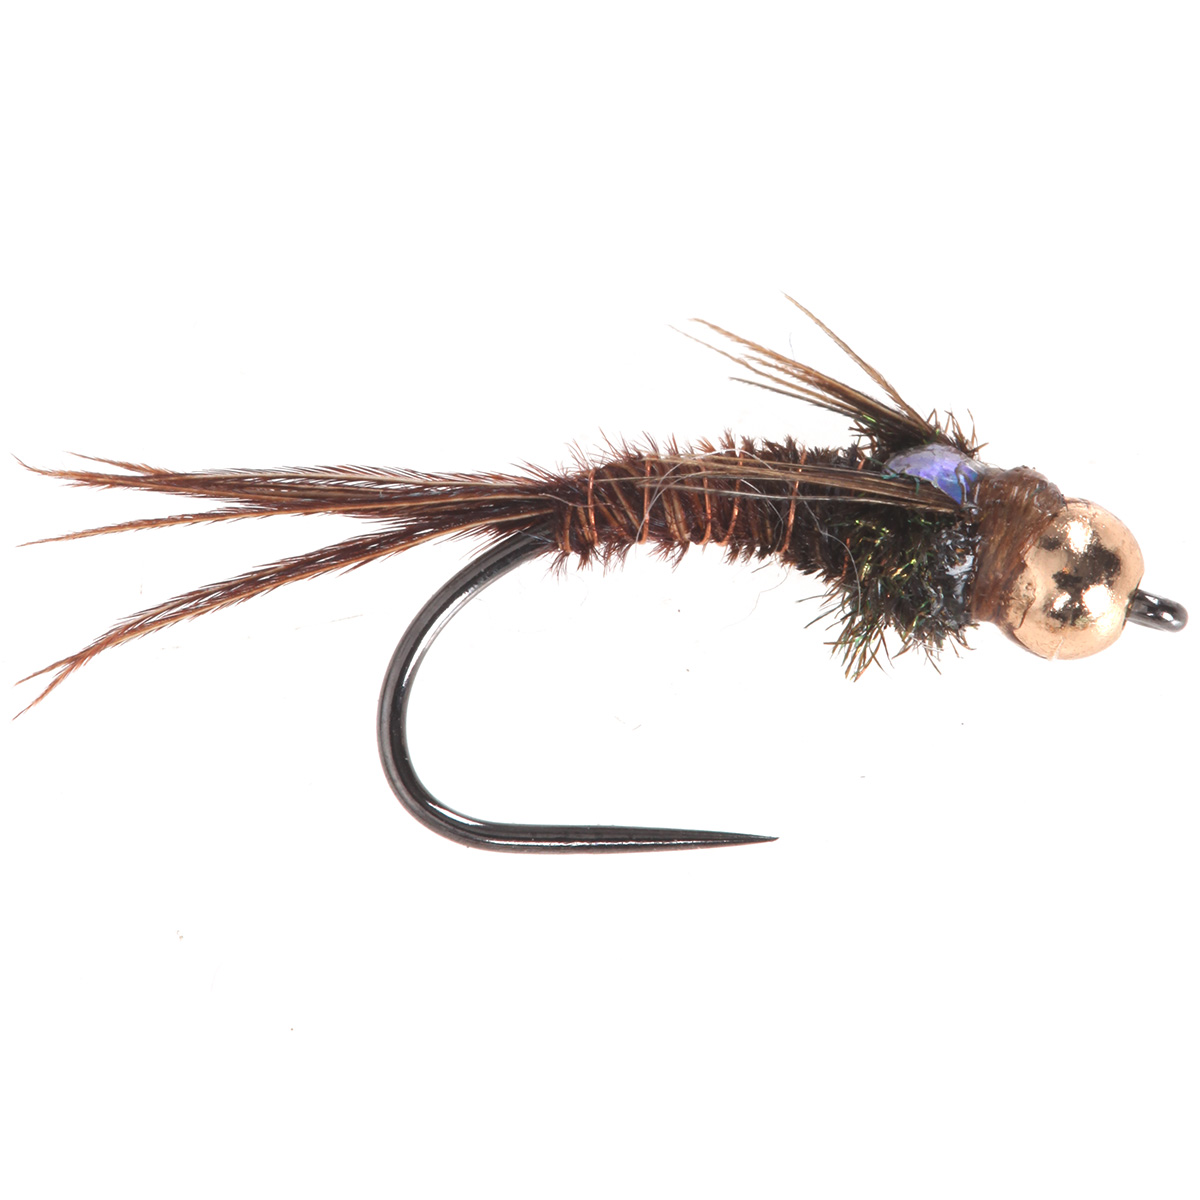 Pheasant Tail Nymph Bead Head Flashback